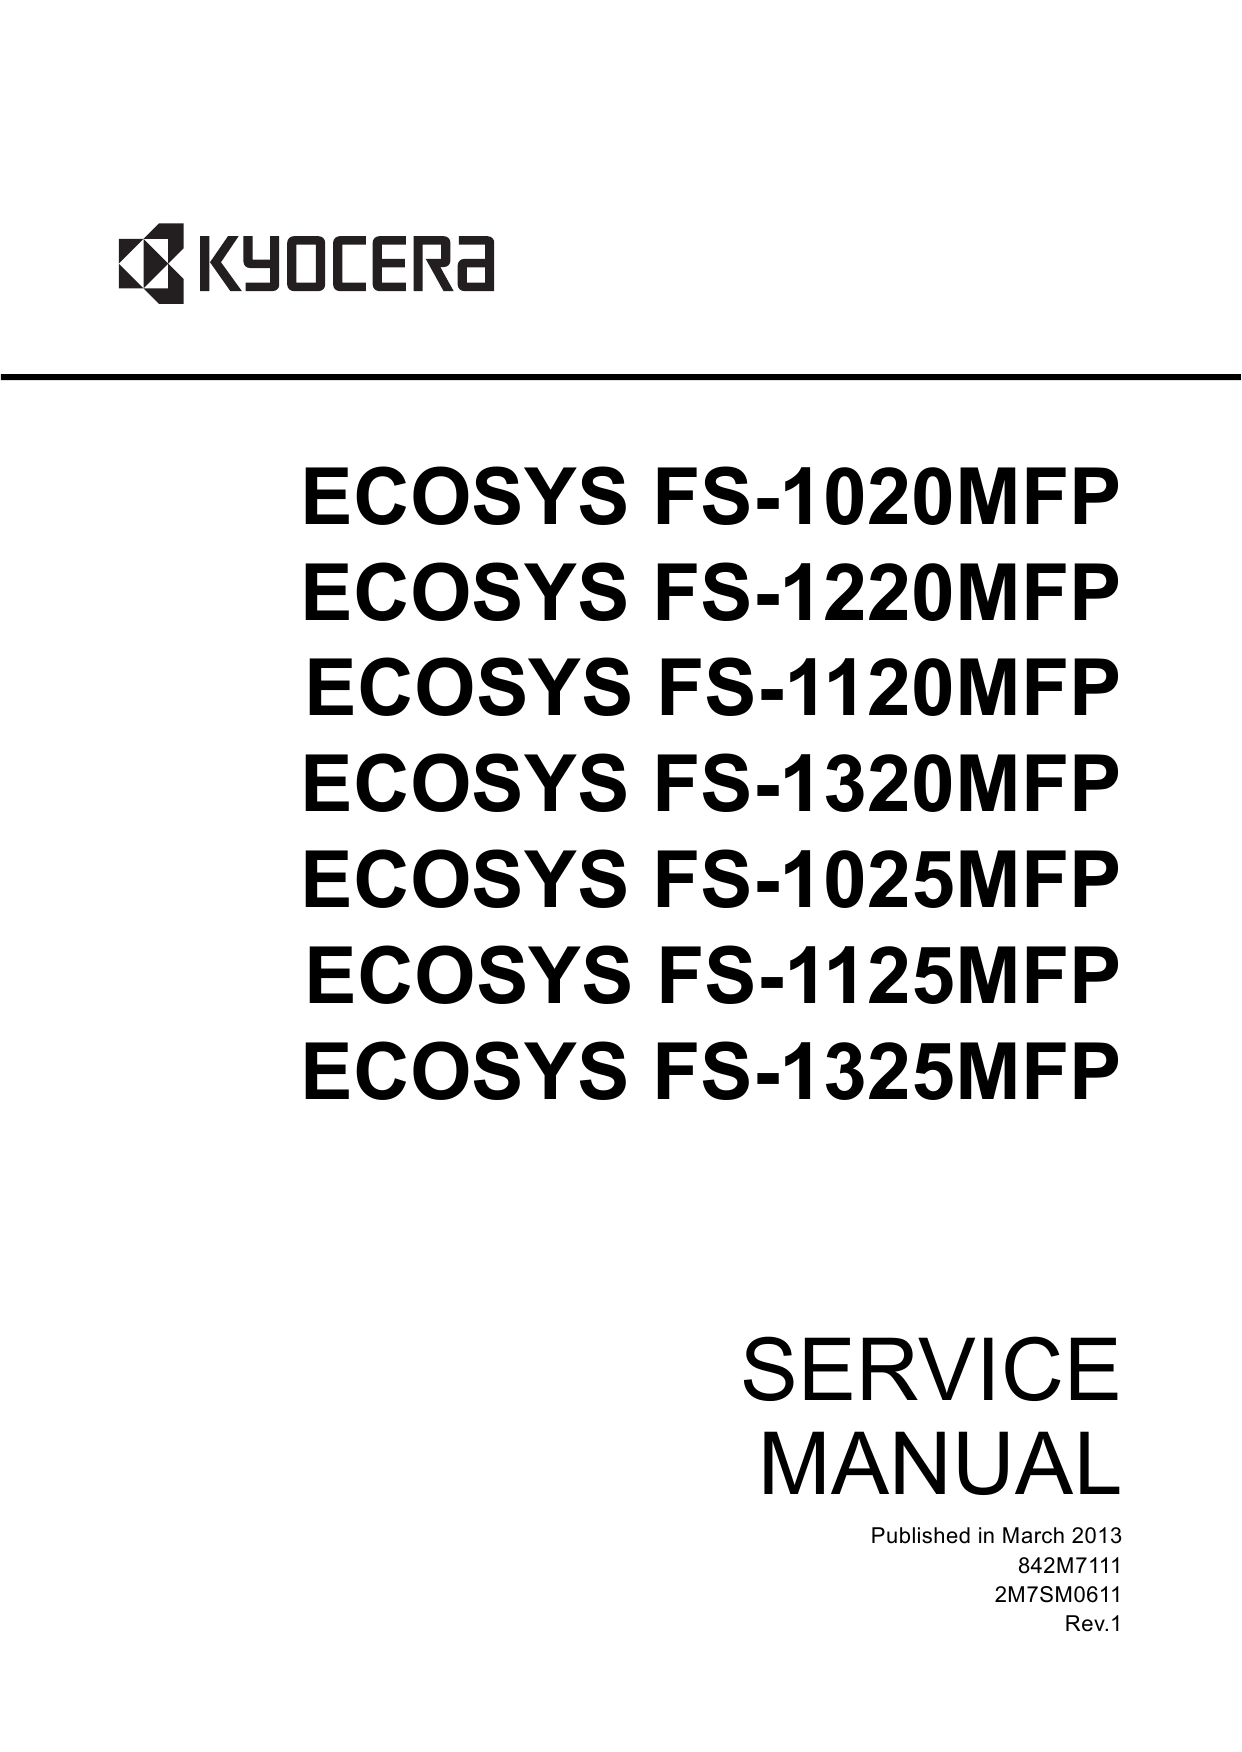 Manual kyocera fs 1120mfp | paper | electrical connector.